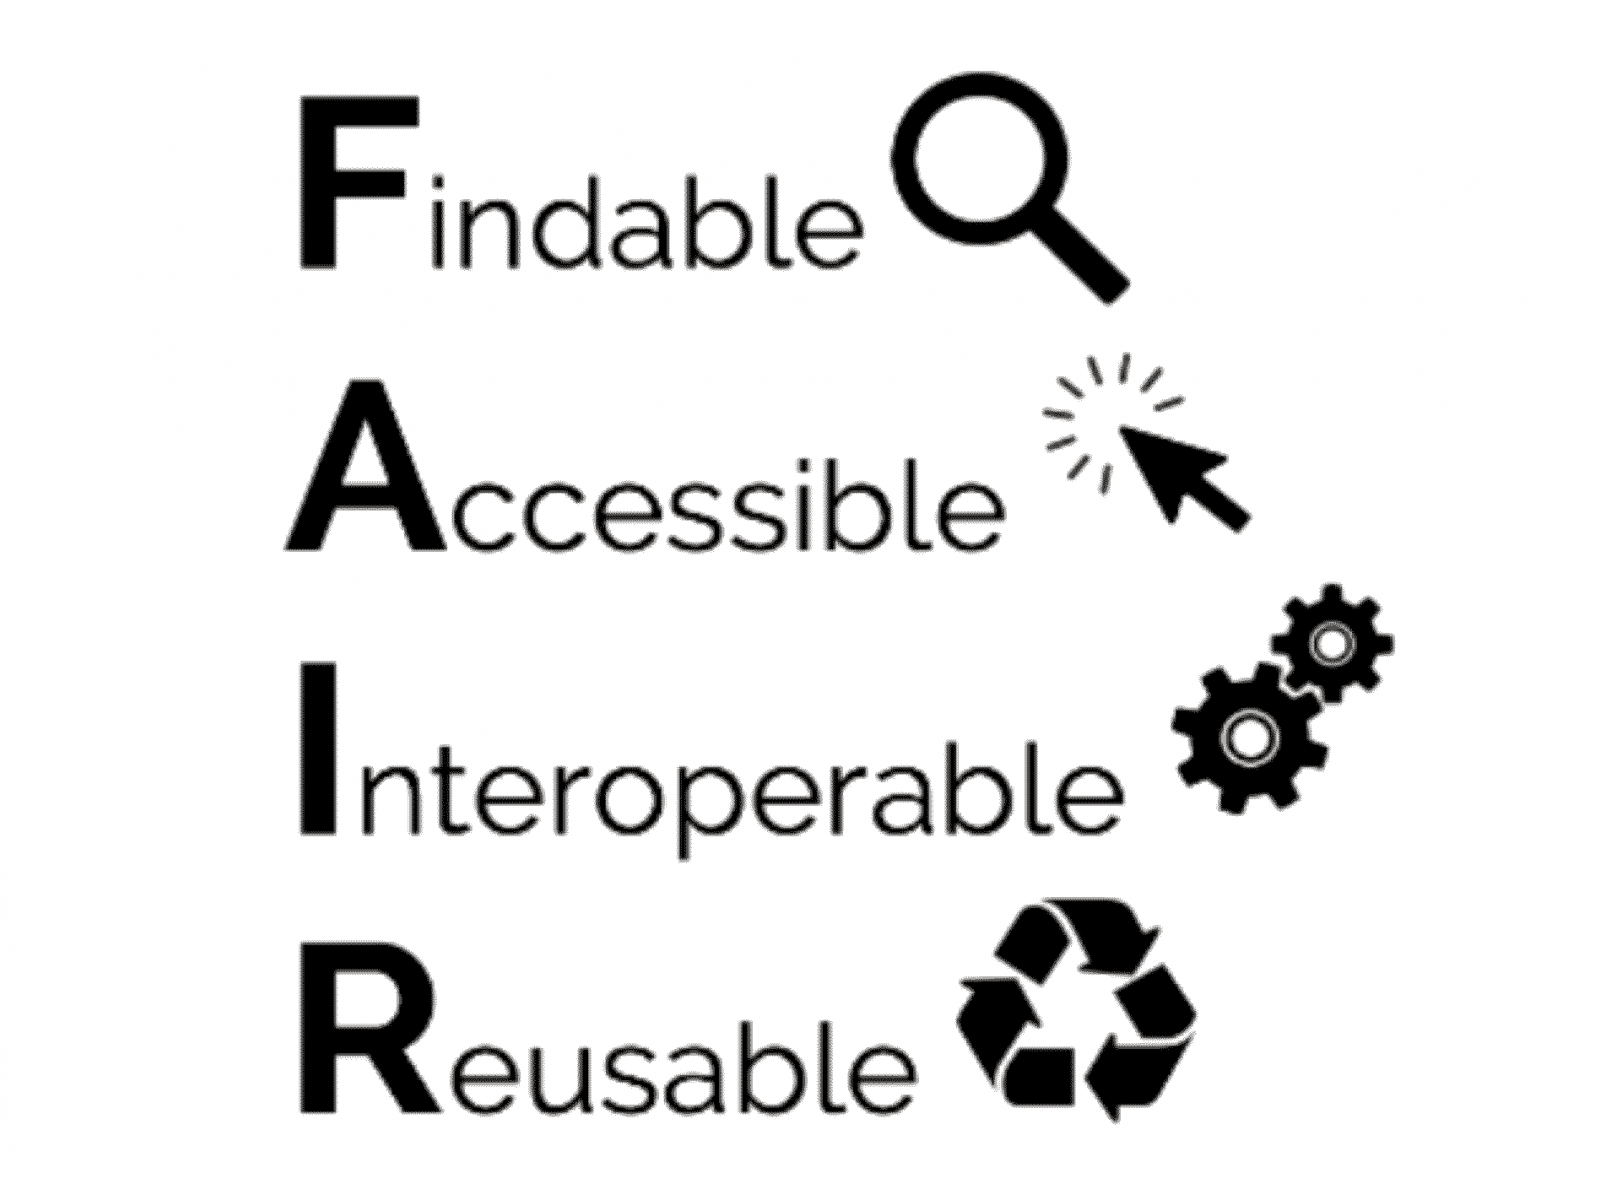 Findable, Accessible, Interoperable, and Reusable (FAIR)